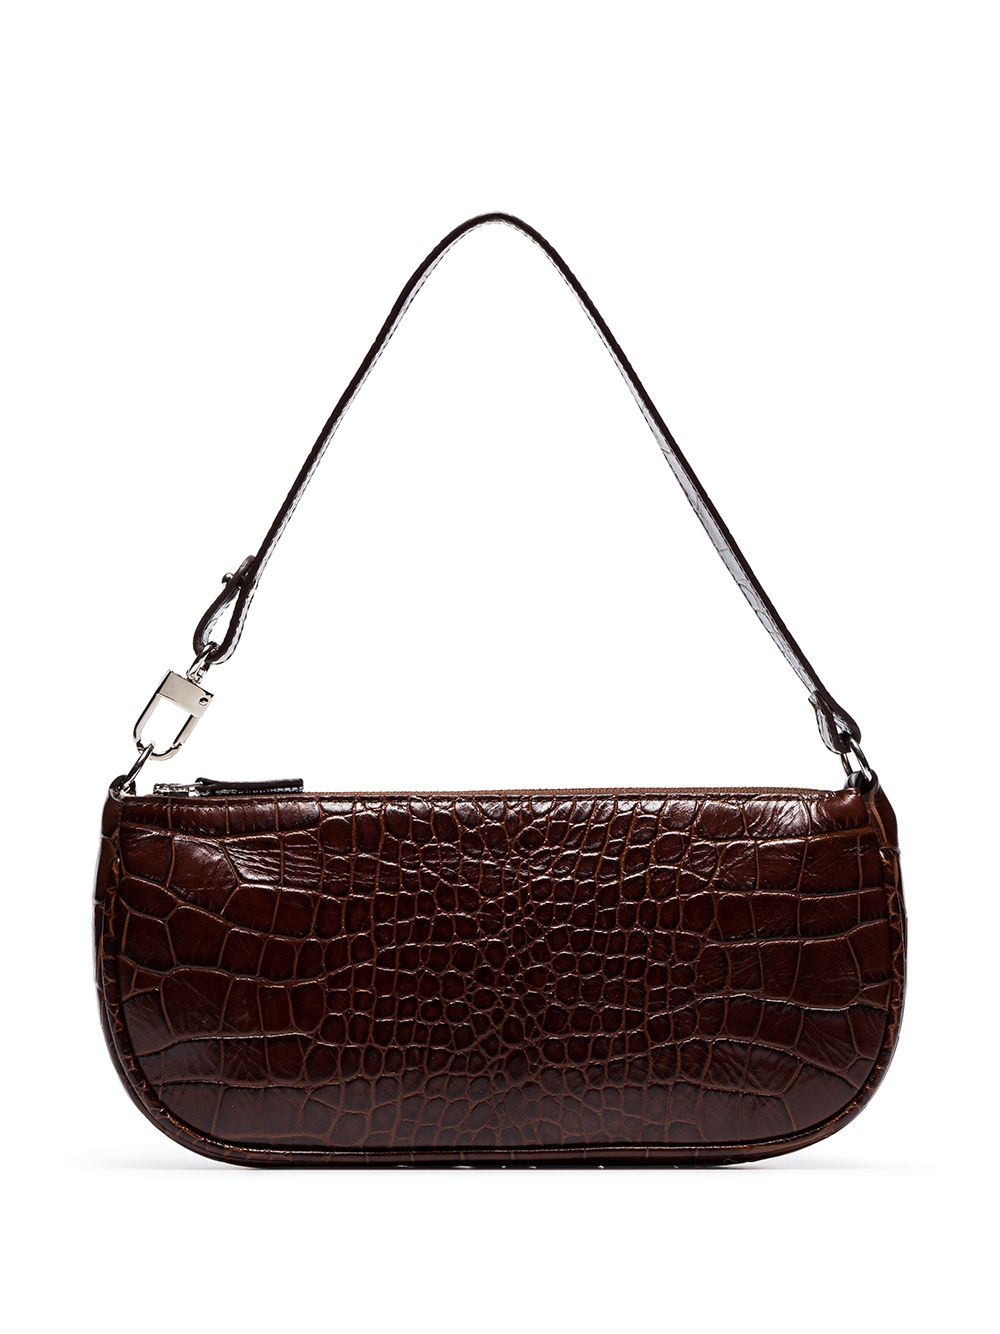 Rachel Leather Handbag